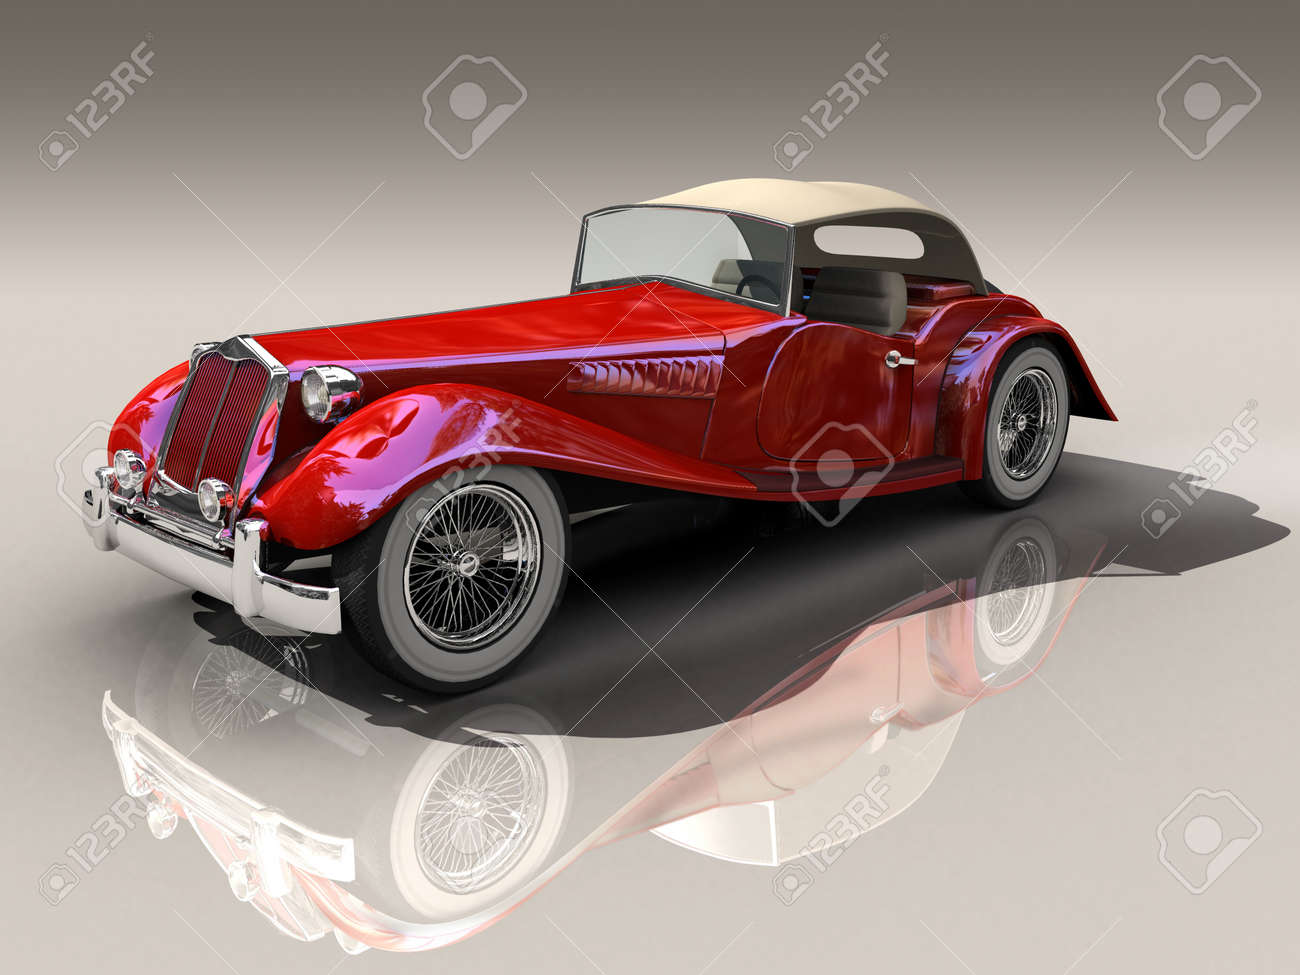 Shiny Old Hot Rod 3D Model Of Vintage Red Car Stock Photo, Picture ...